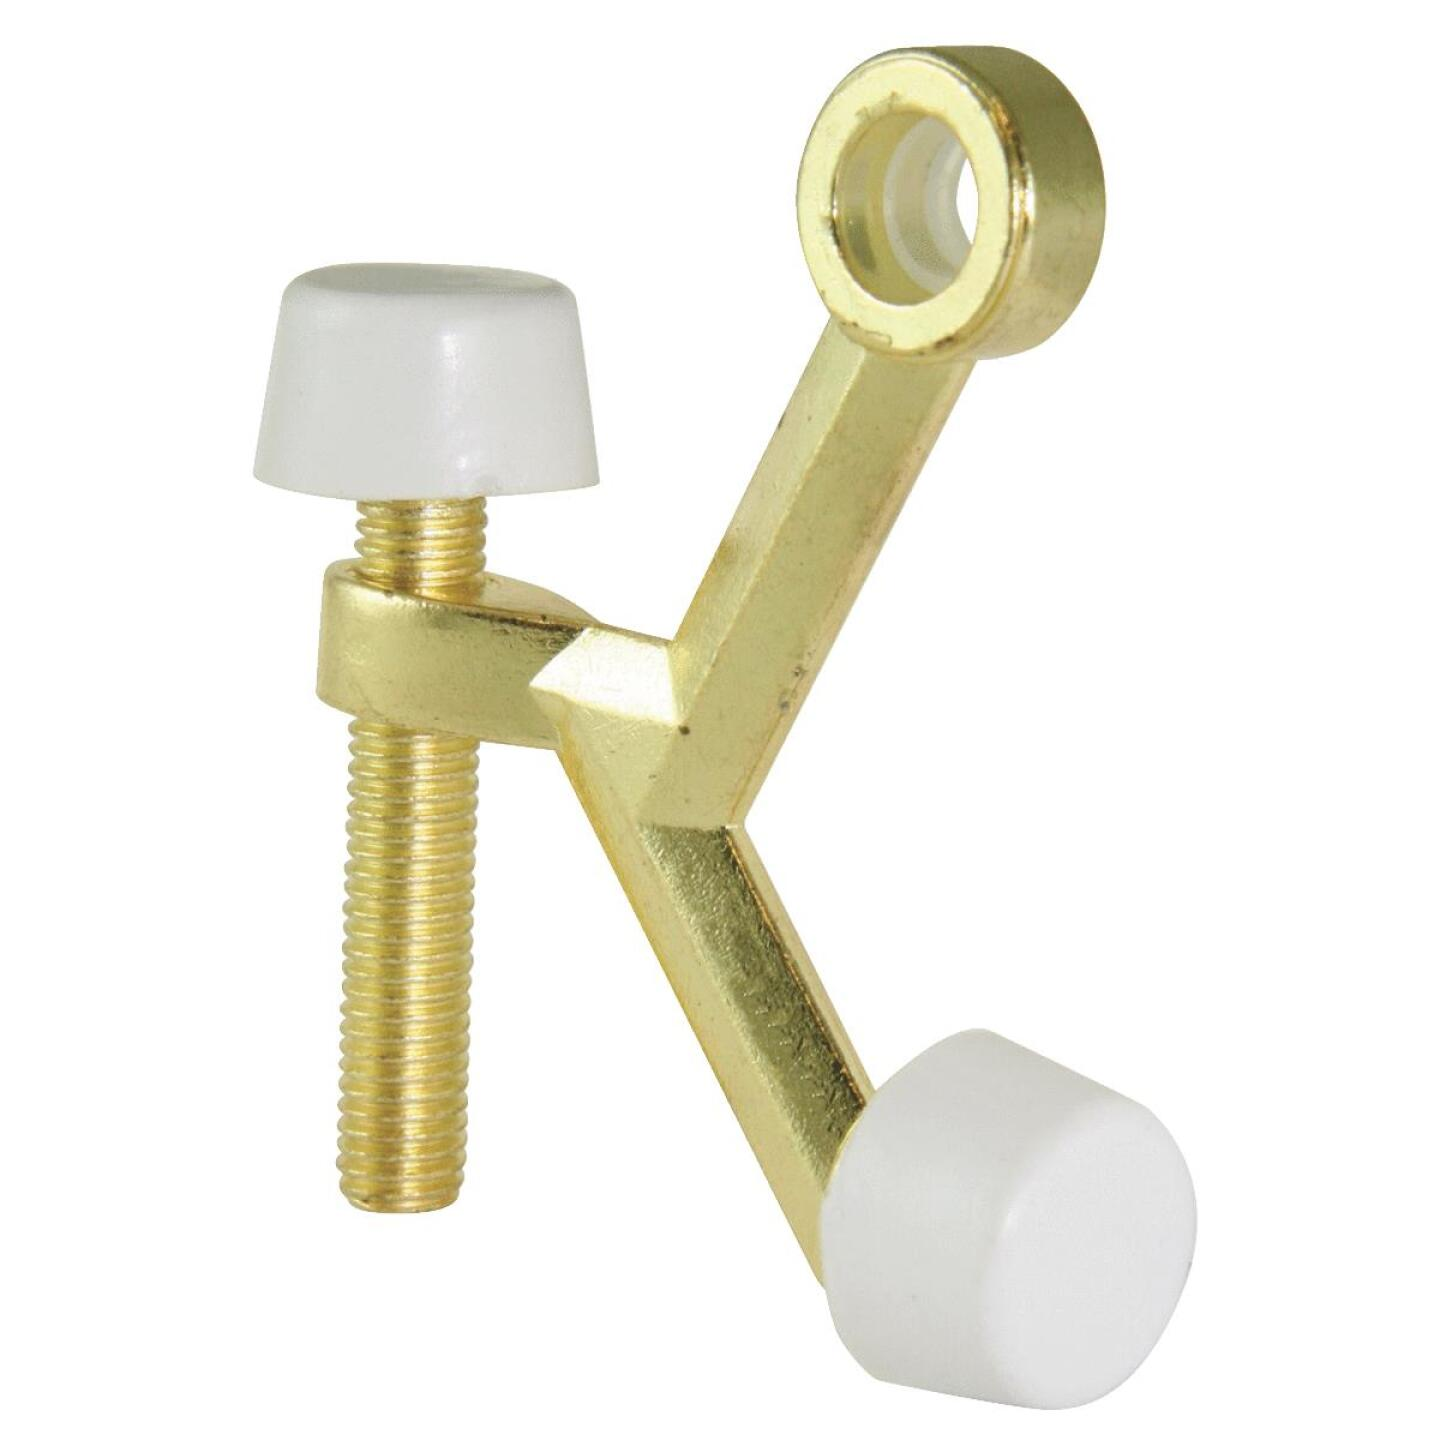 Ultra Hardware 3 In. Polished Brass Hinge Pin Door Stop Image 1